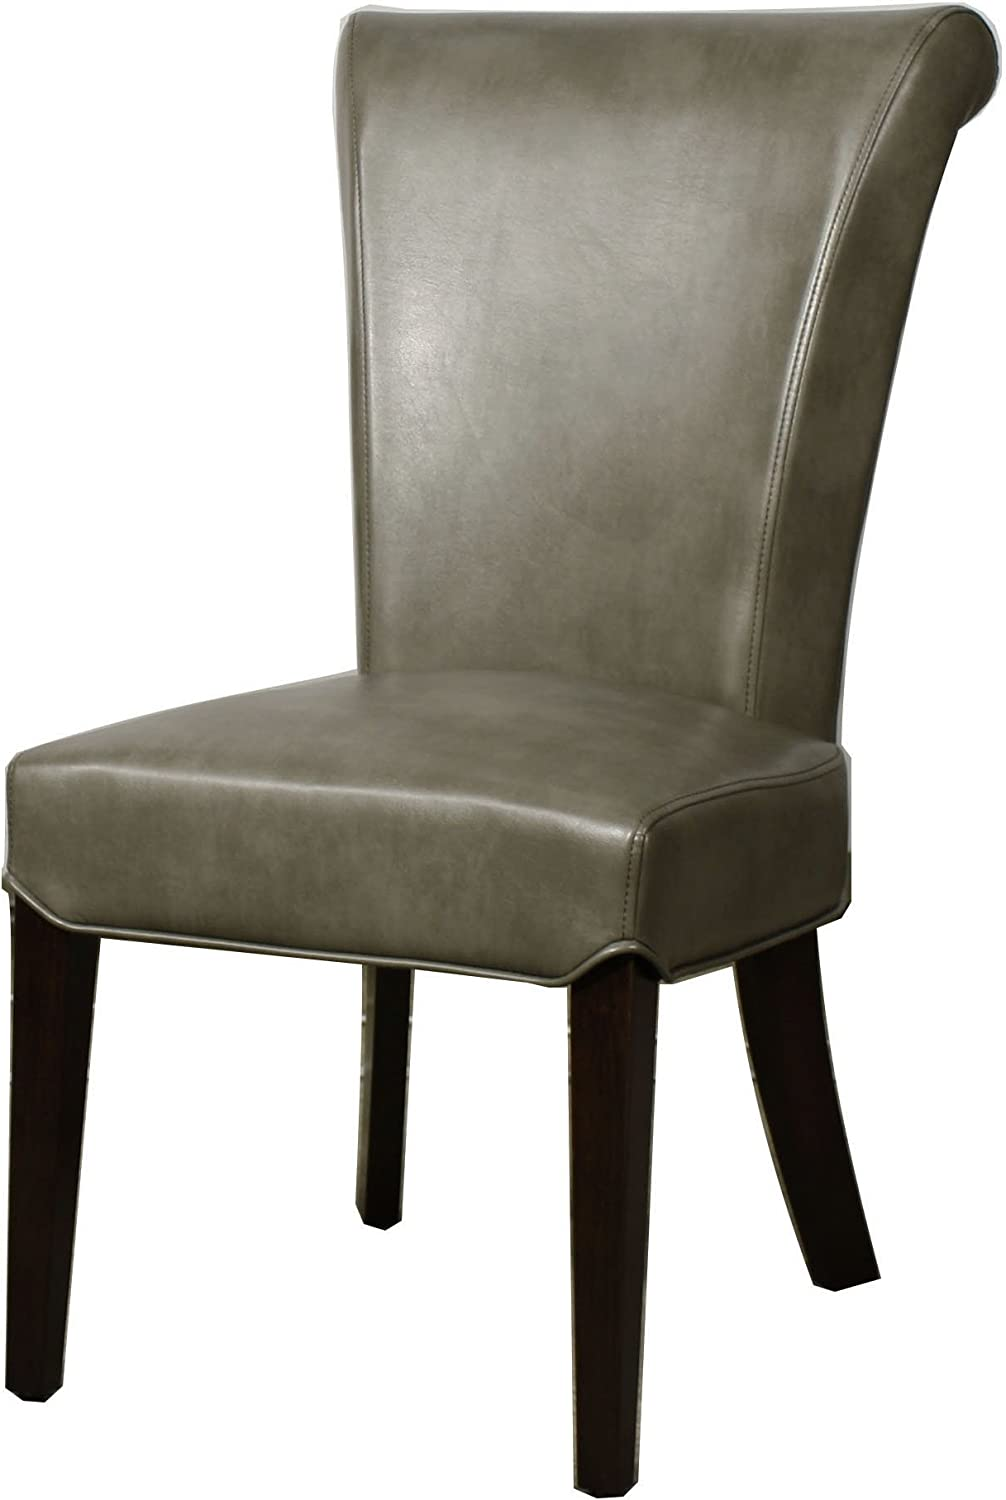 New Pacific Direct Bentley Bonded Leather Chair,Set of 2 Furniture, Quarry Gray